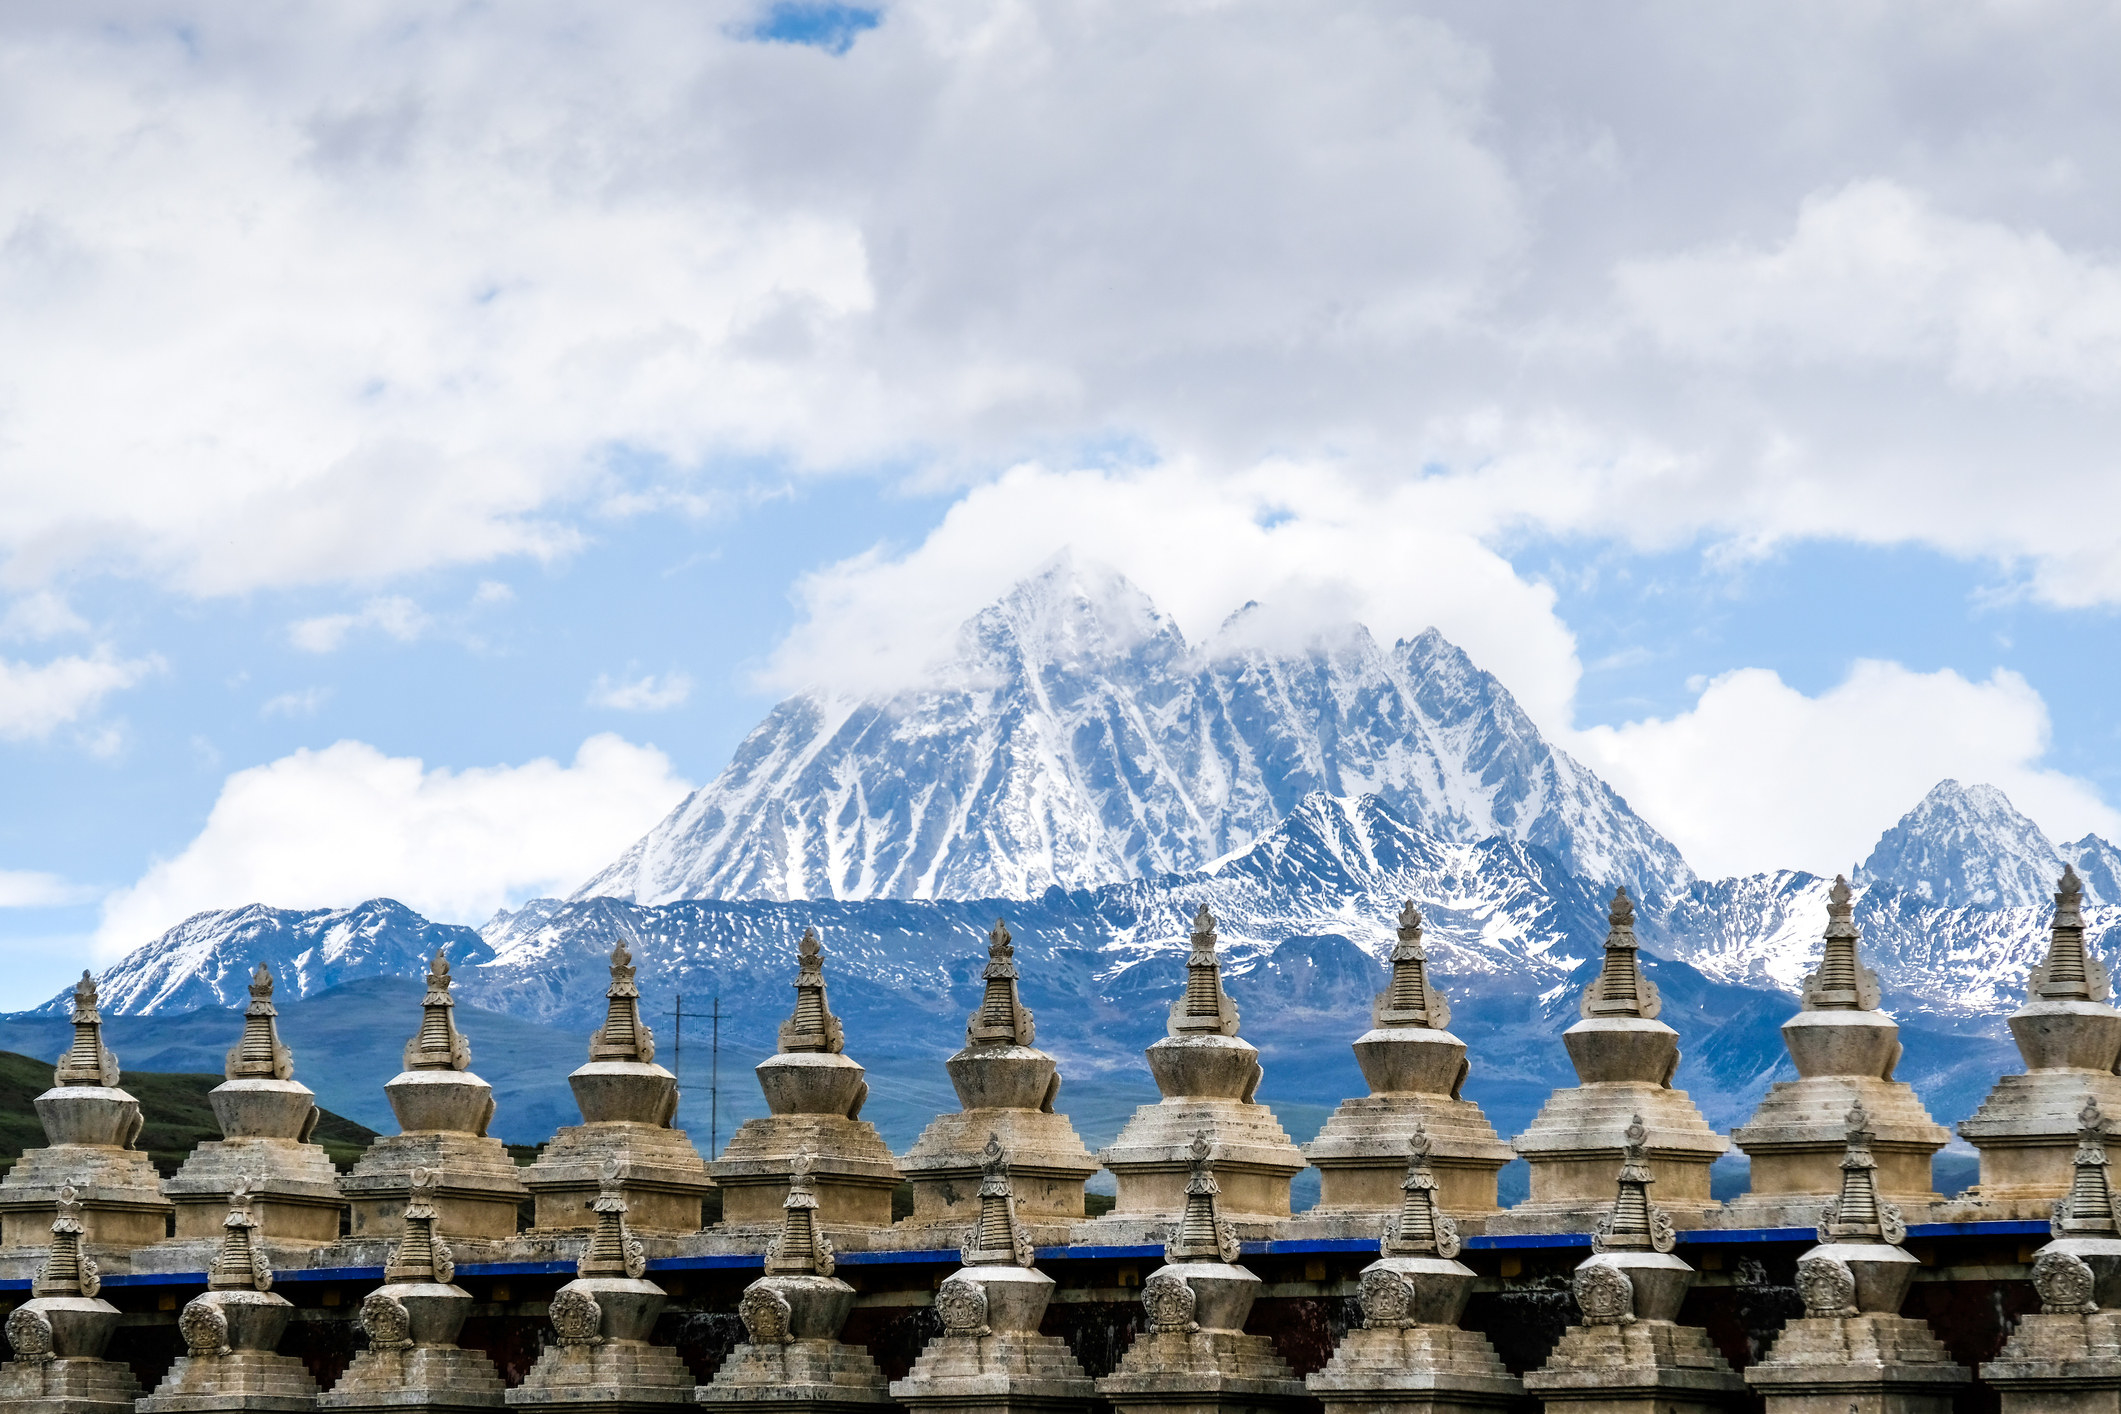 A temple overlooking a mountain in Western Sechuan, China.